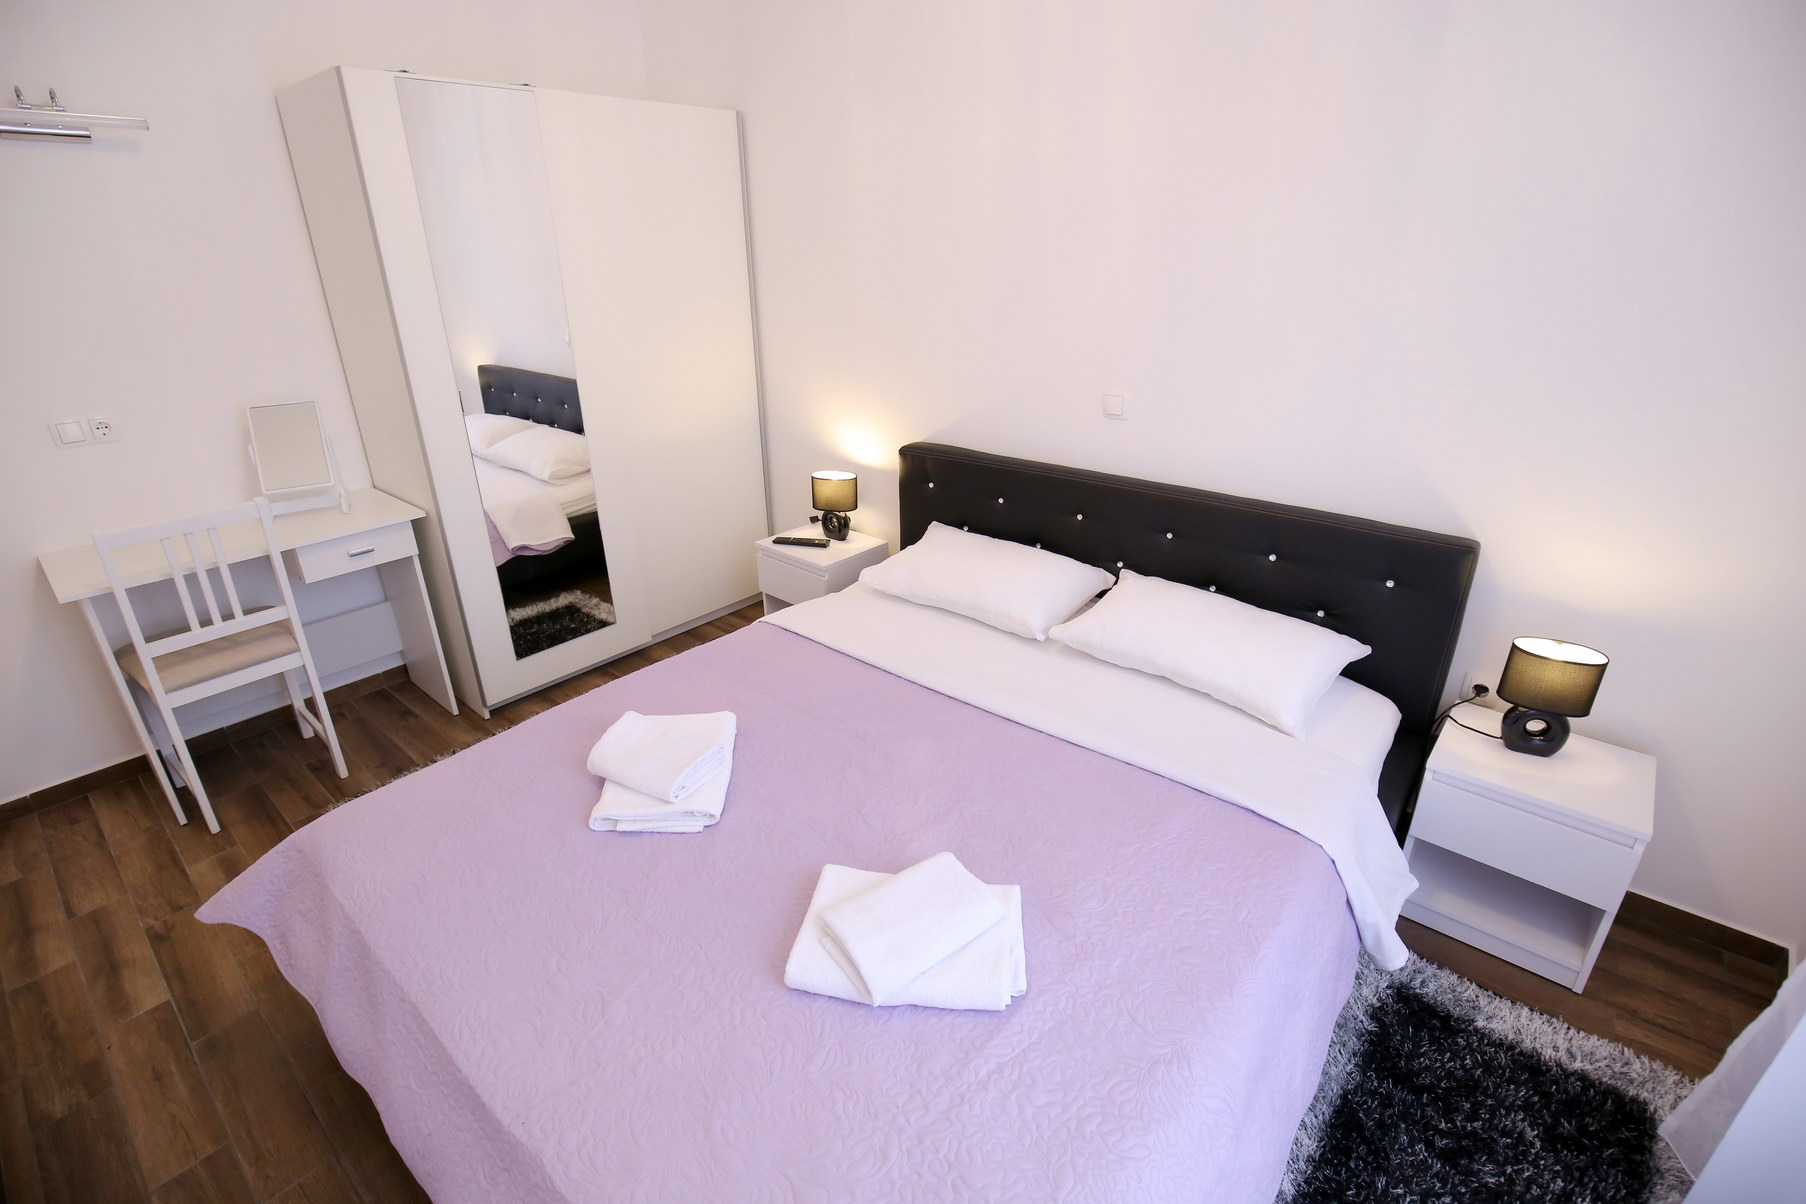 Our beautiful Apartment in center of Zadar.